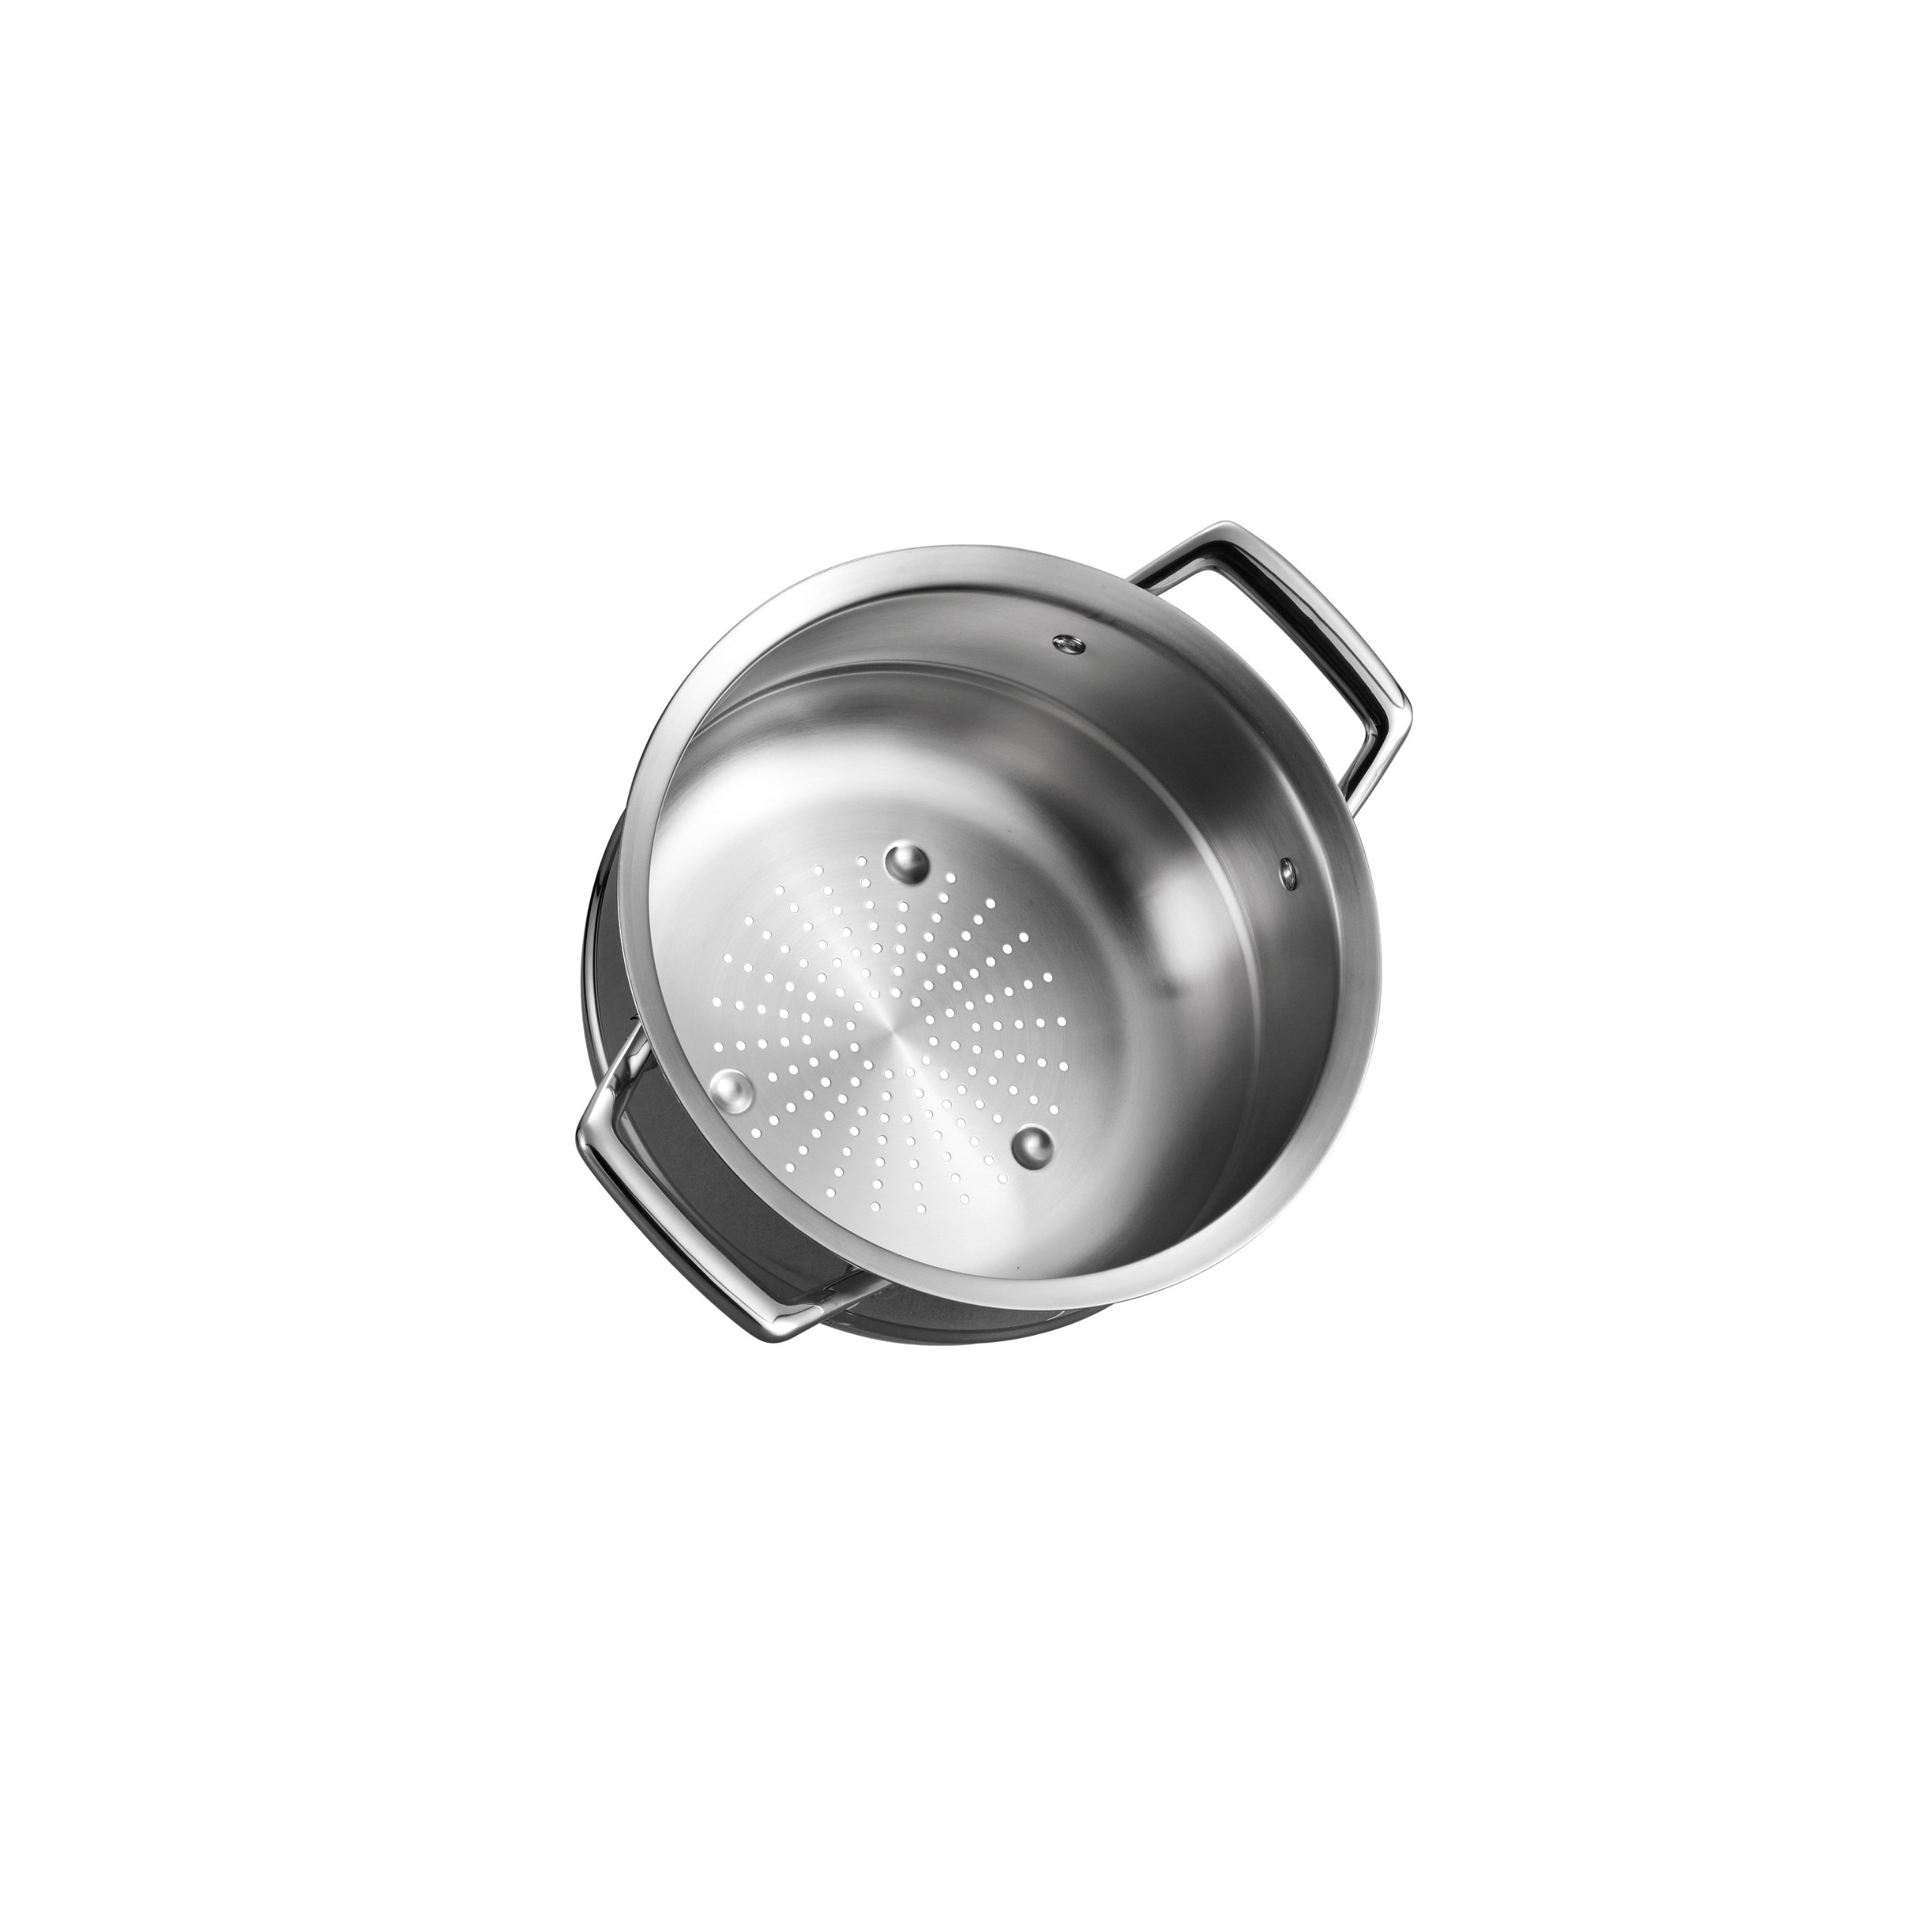 Tramontina 80101/013DS Gourmet Prima Stainless Steel Steamer Insert, 3 Quart, Made in Brazil by Tramontina